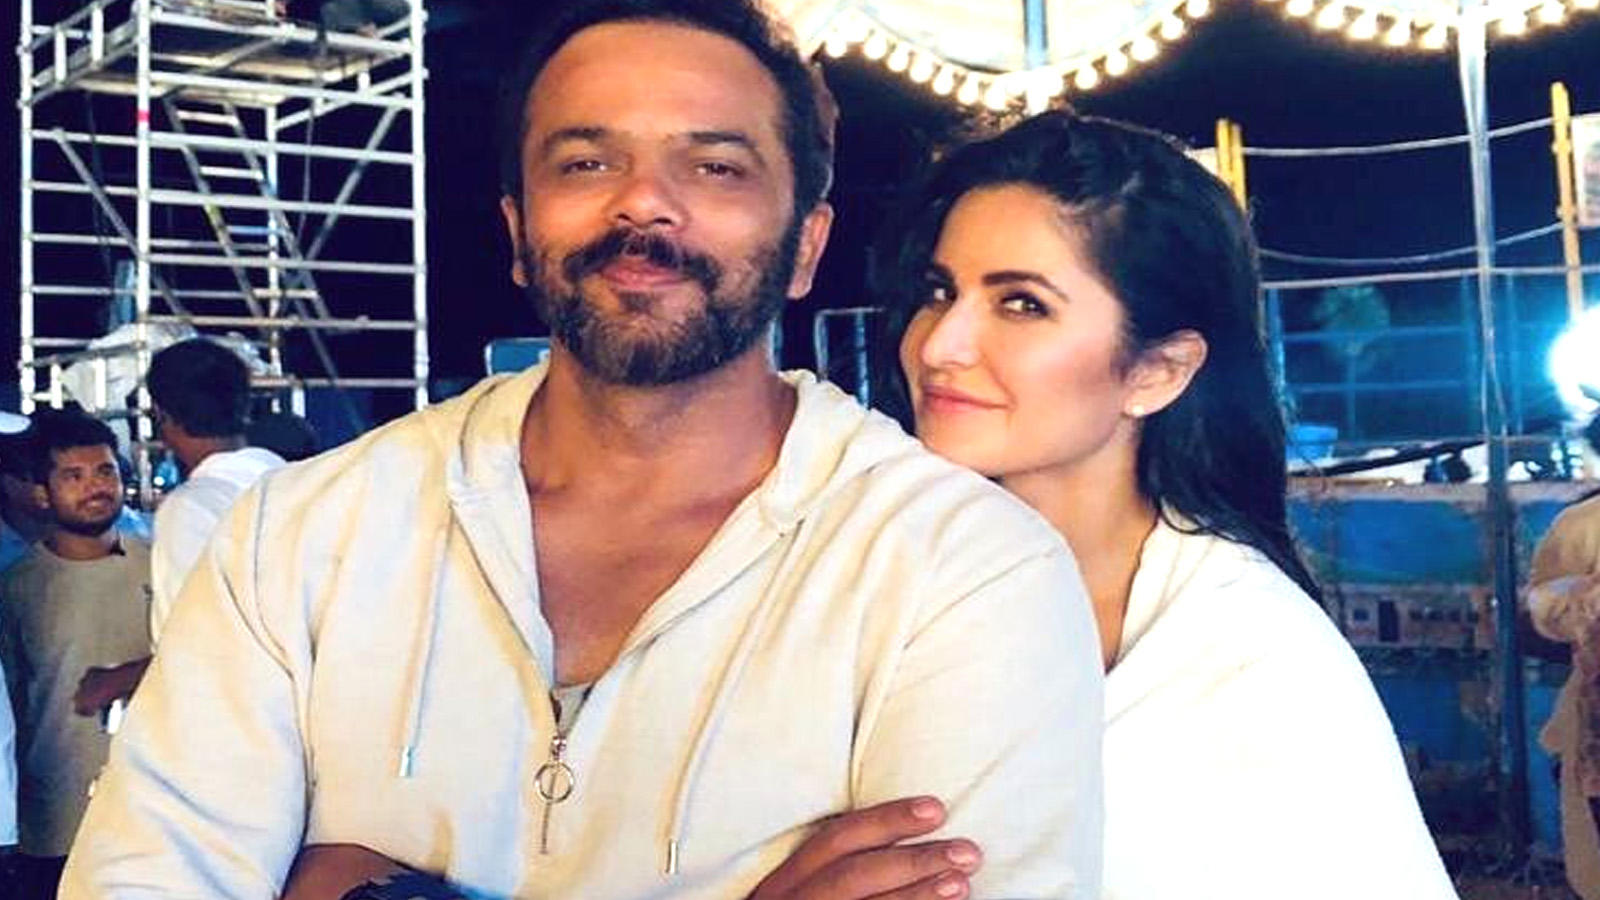 Sooryavanshi: Katrina Kaif shares another 'towel series' pic, this time with Rohit Shetty